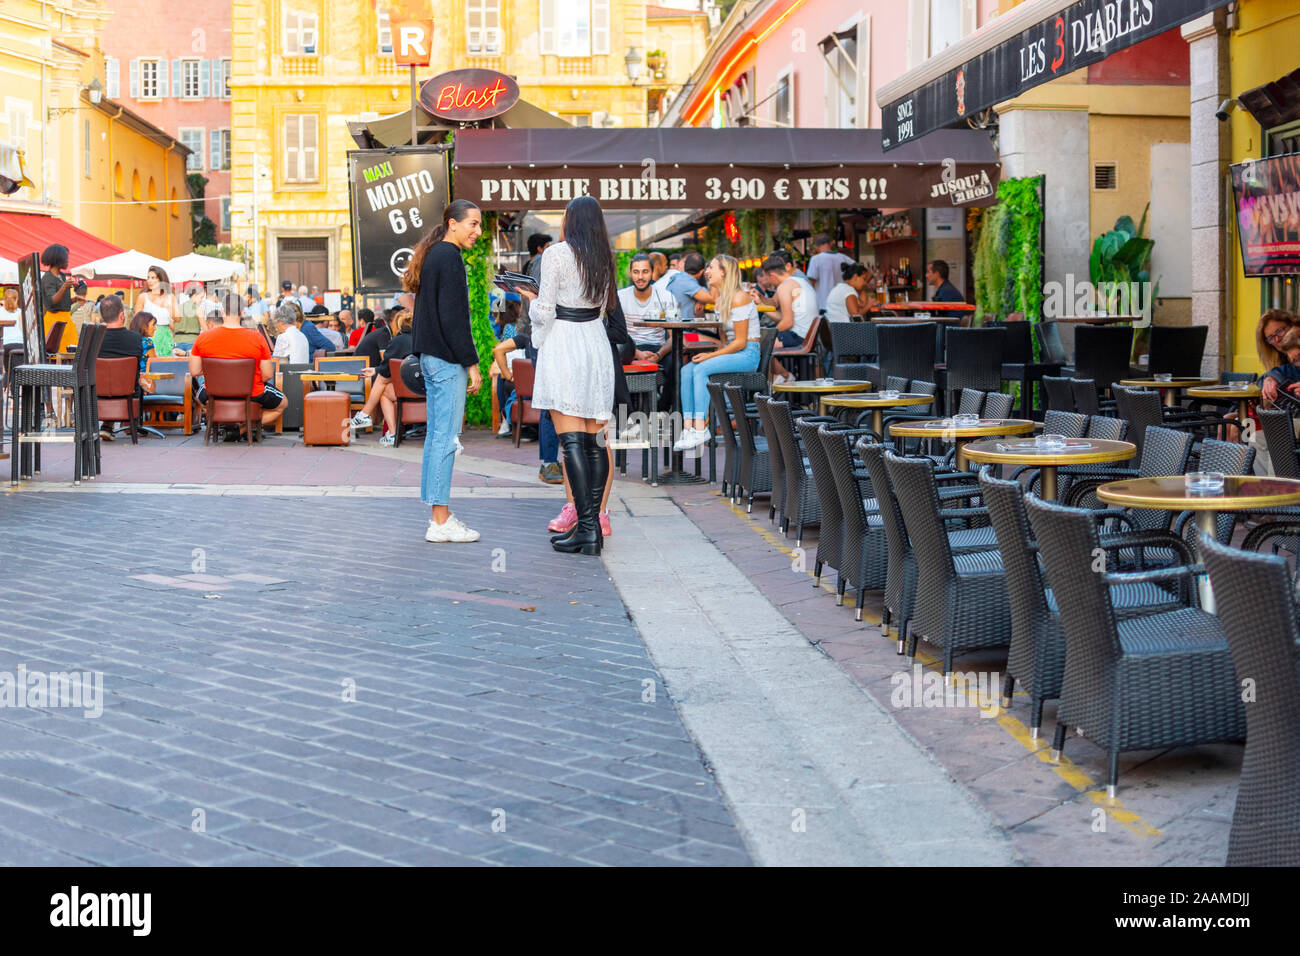 Young people congregate at the Cours Saleya Old Town area in Nice, France as diners enjoy an early dinner on the French Riviera. Stock Photo